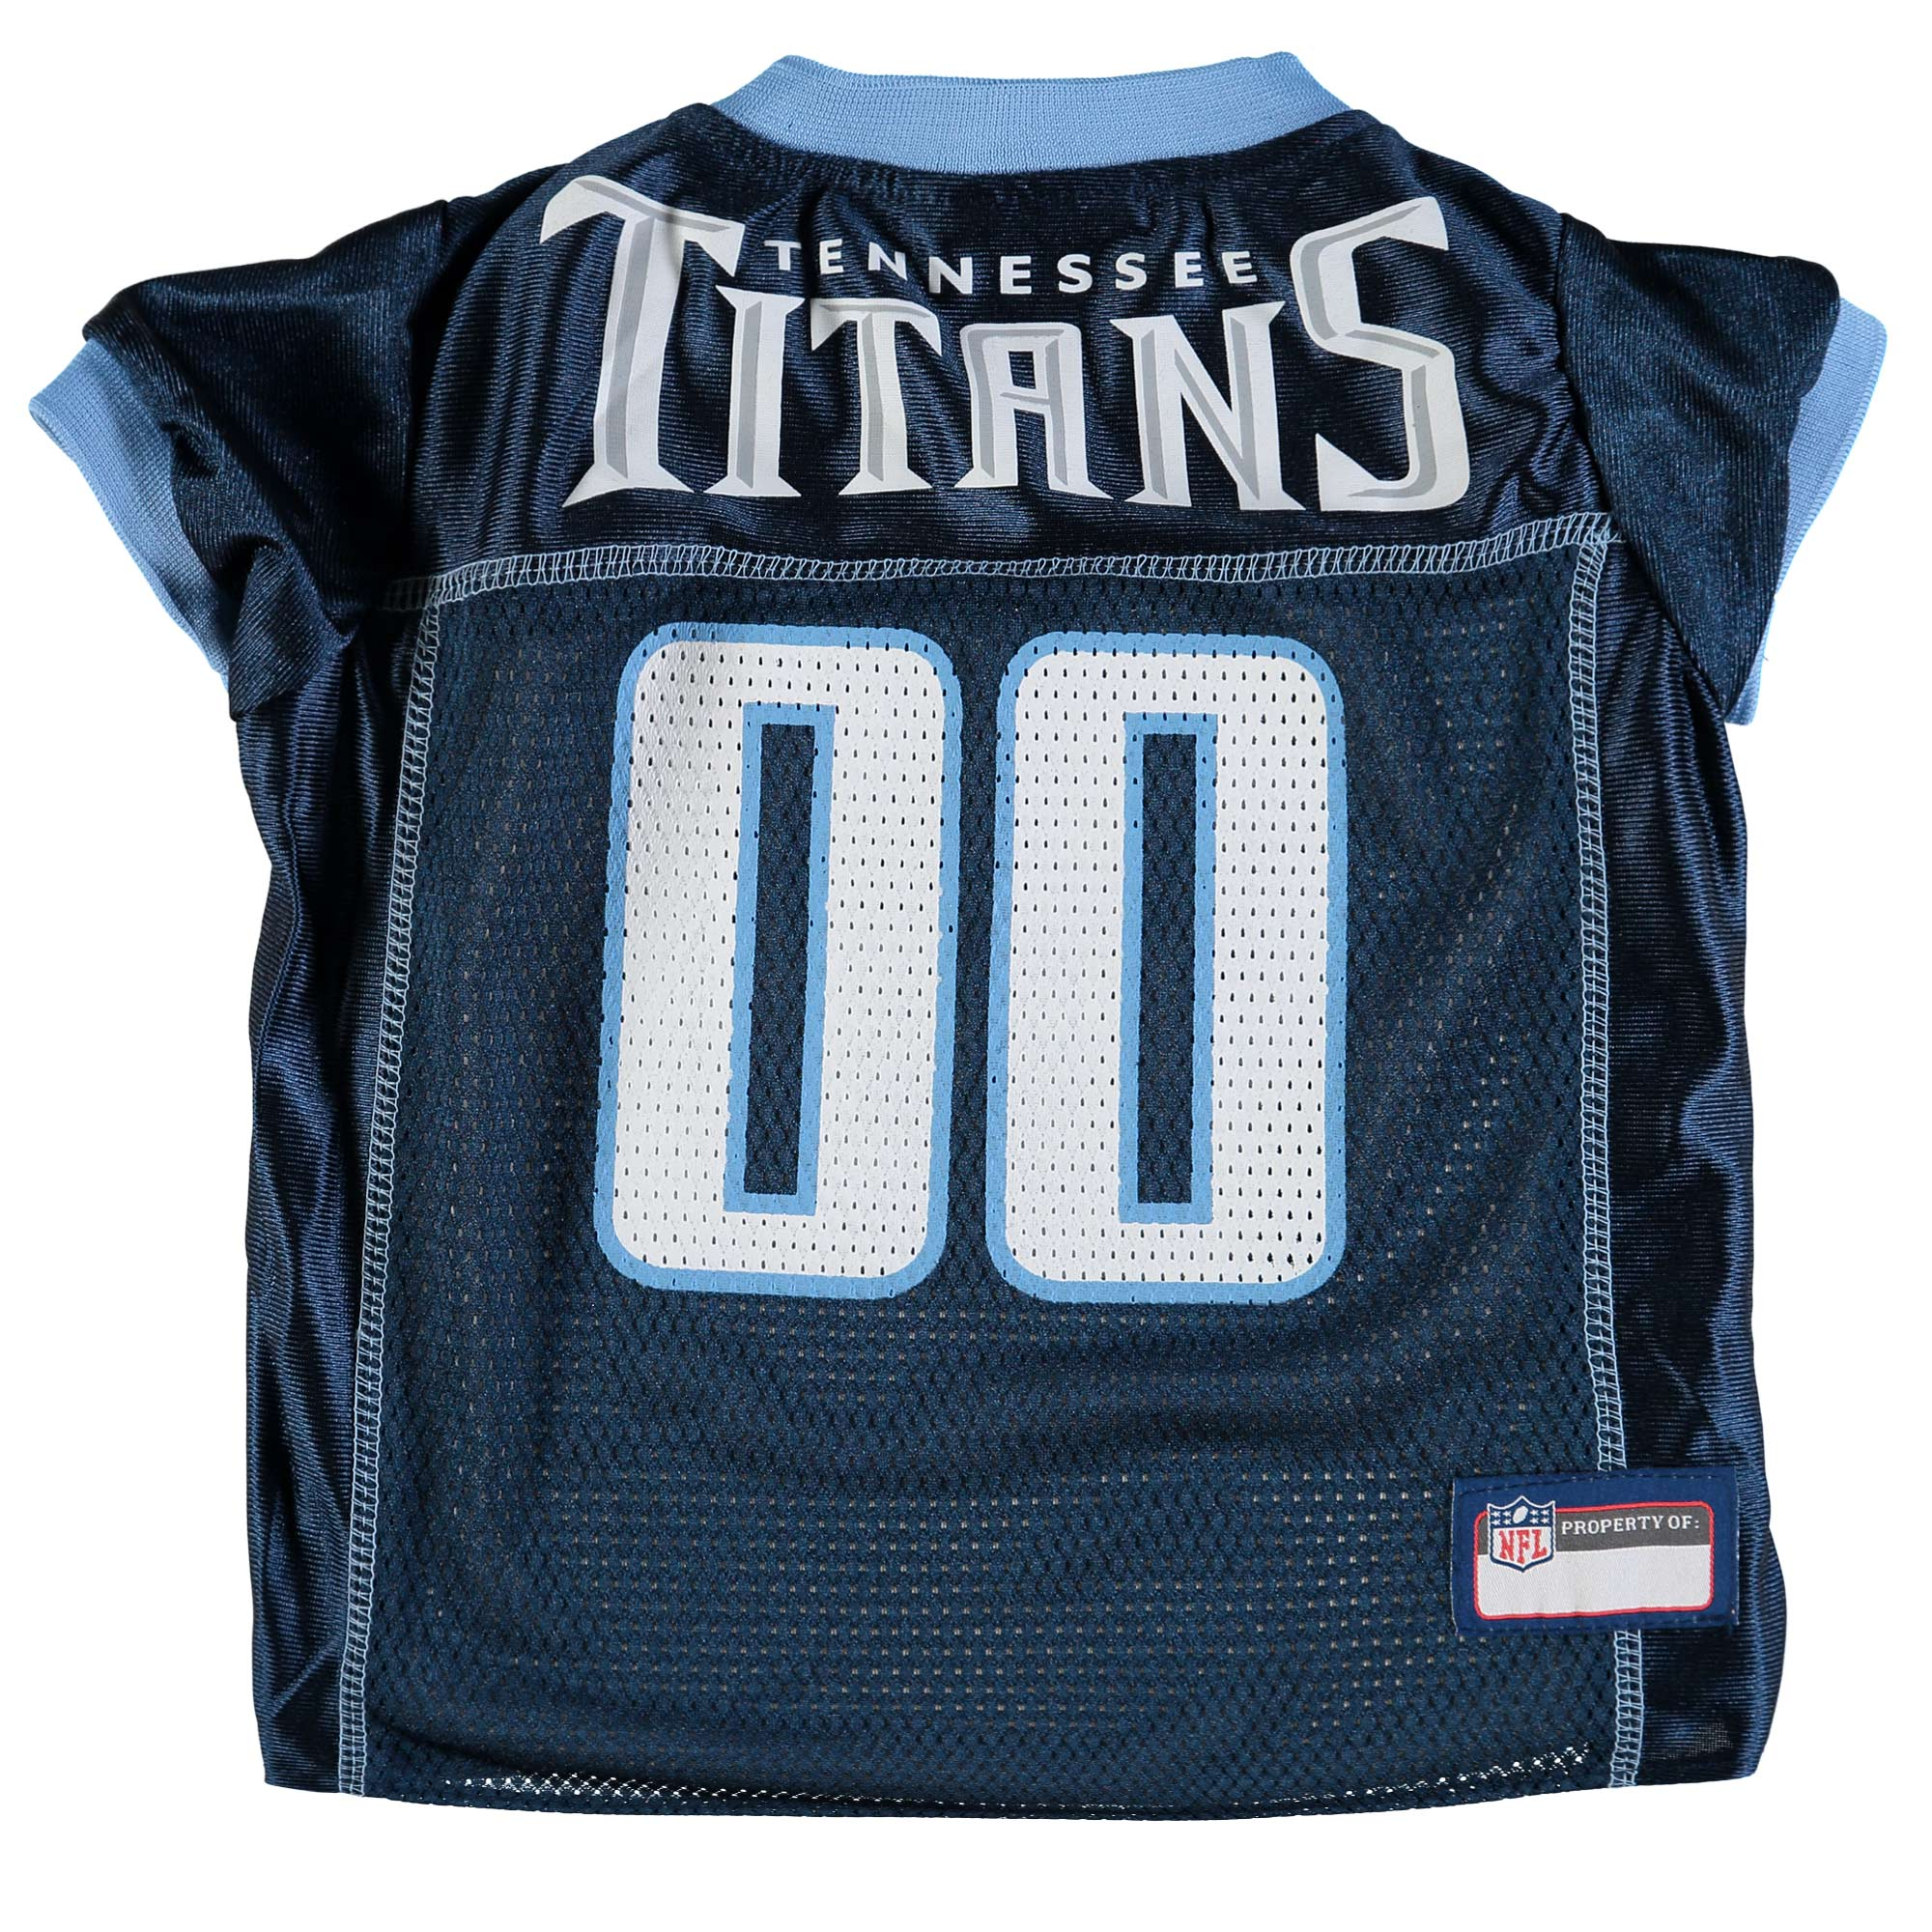 Tennessee Titans Mesh Dog Jersey